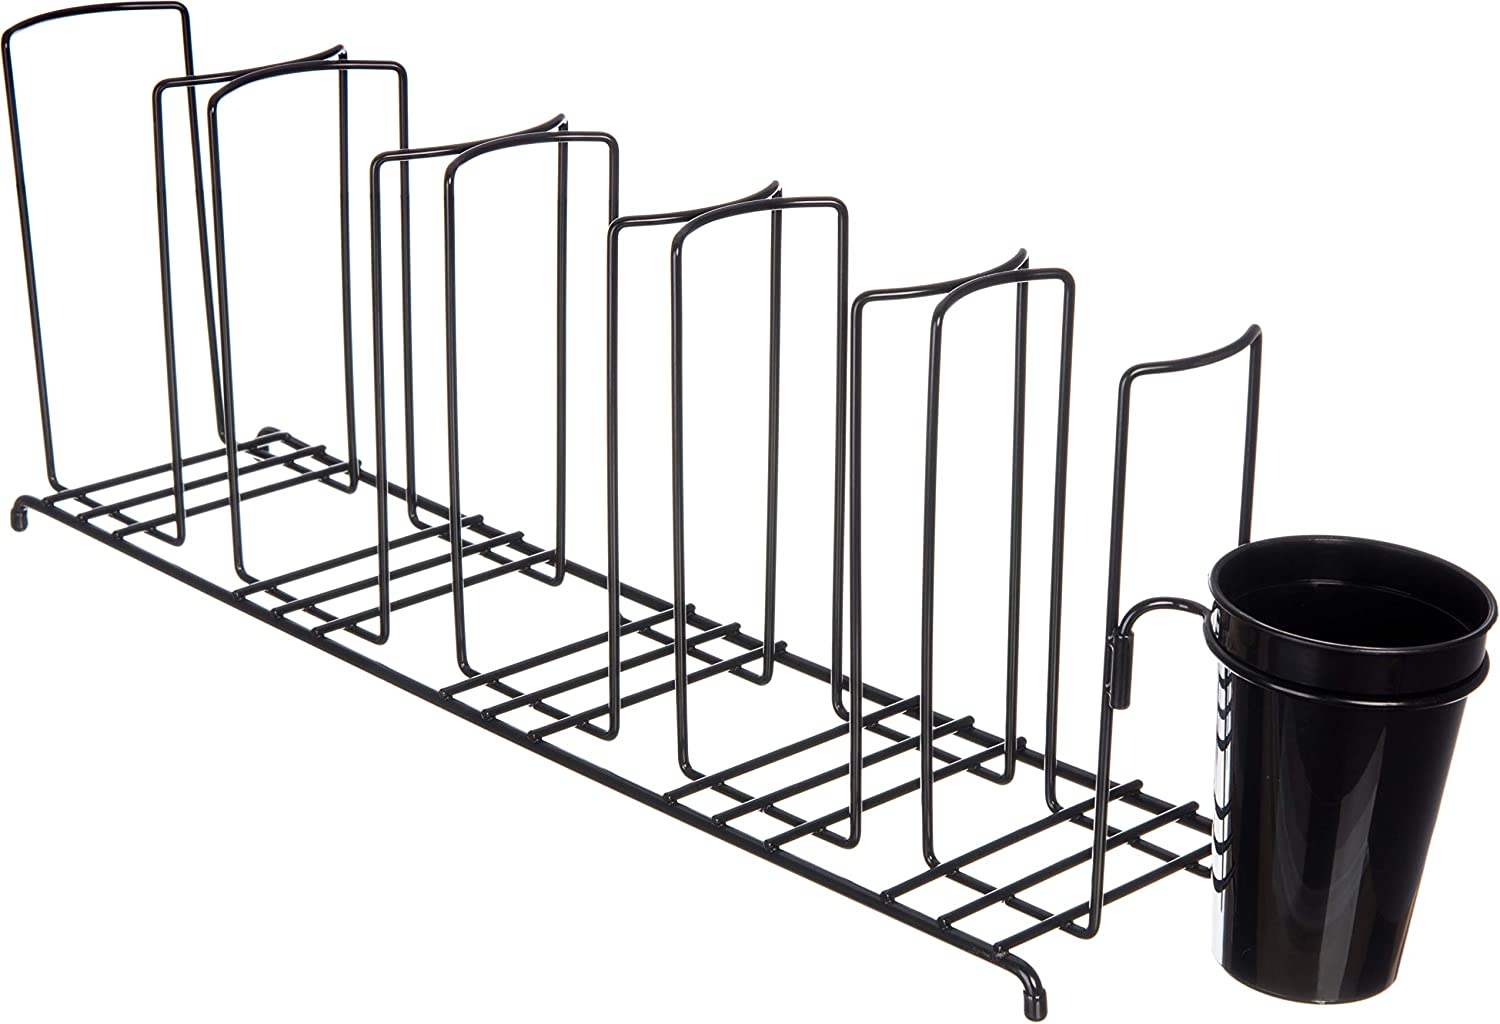 San Jamar C8003WFS Steel Cup and Lid Wire Organizer with Caddy and 3 Stacks, Black